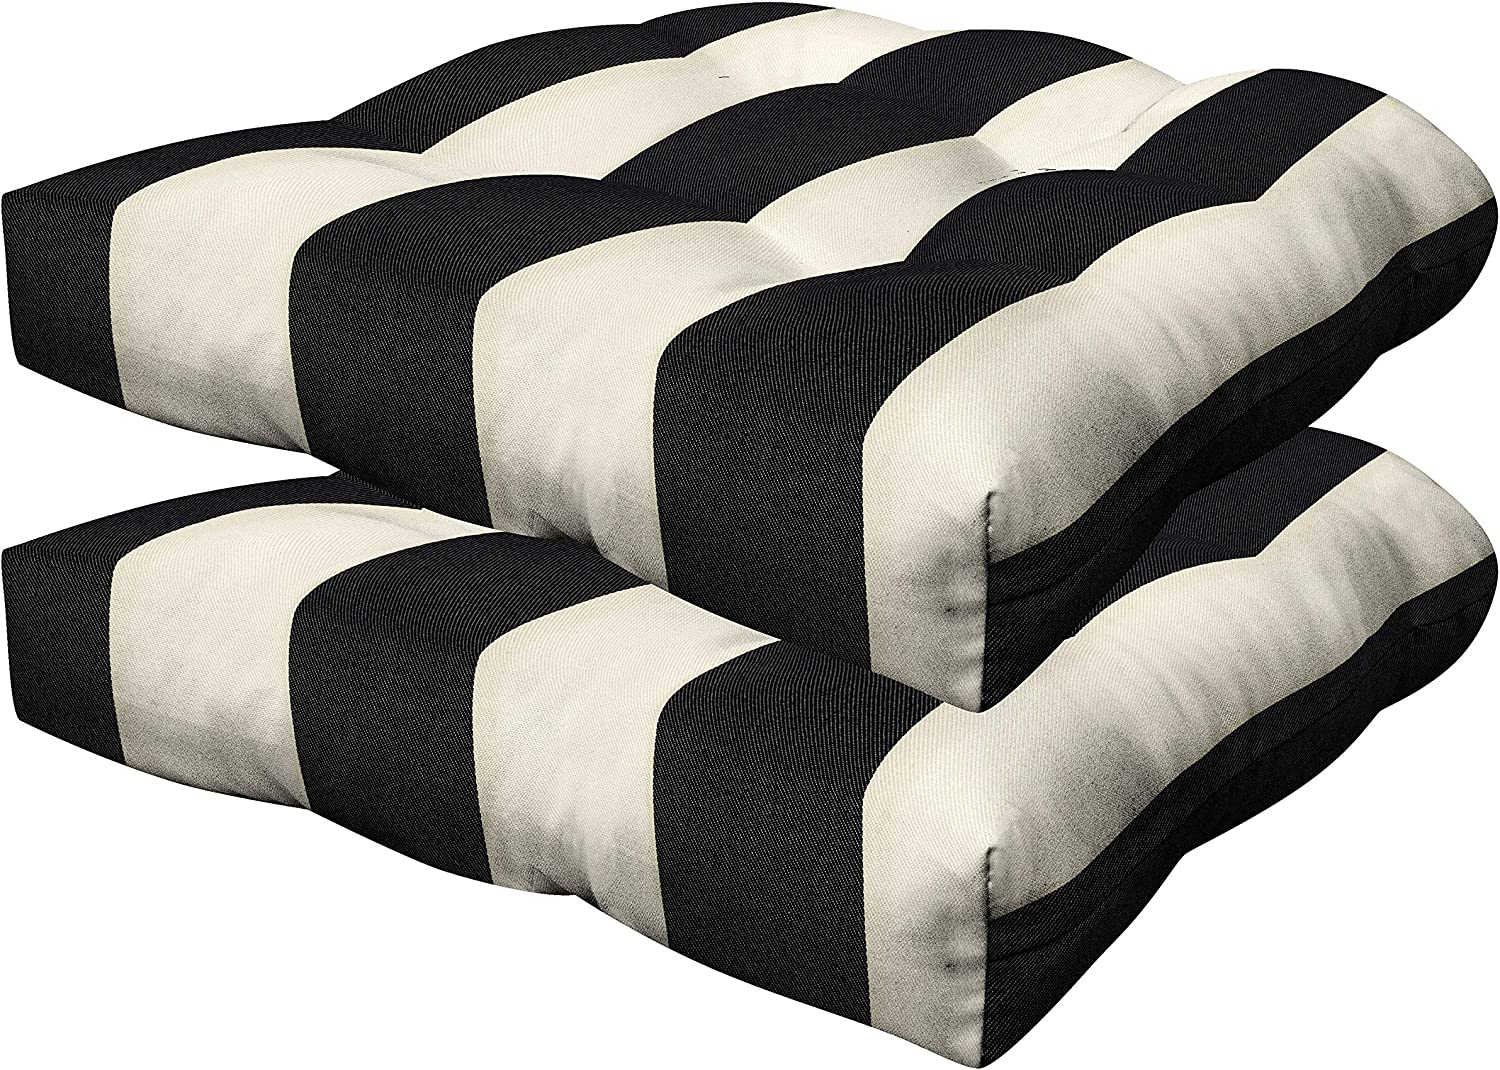 Honeycomb Indoor/Outdoor Cabana Stripe Black and Cream Contoured Tufted Seat Cushion: Recycled Polyester Fill, Weather Resistant, Pack of 2 Patio Cushions: 19.5